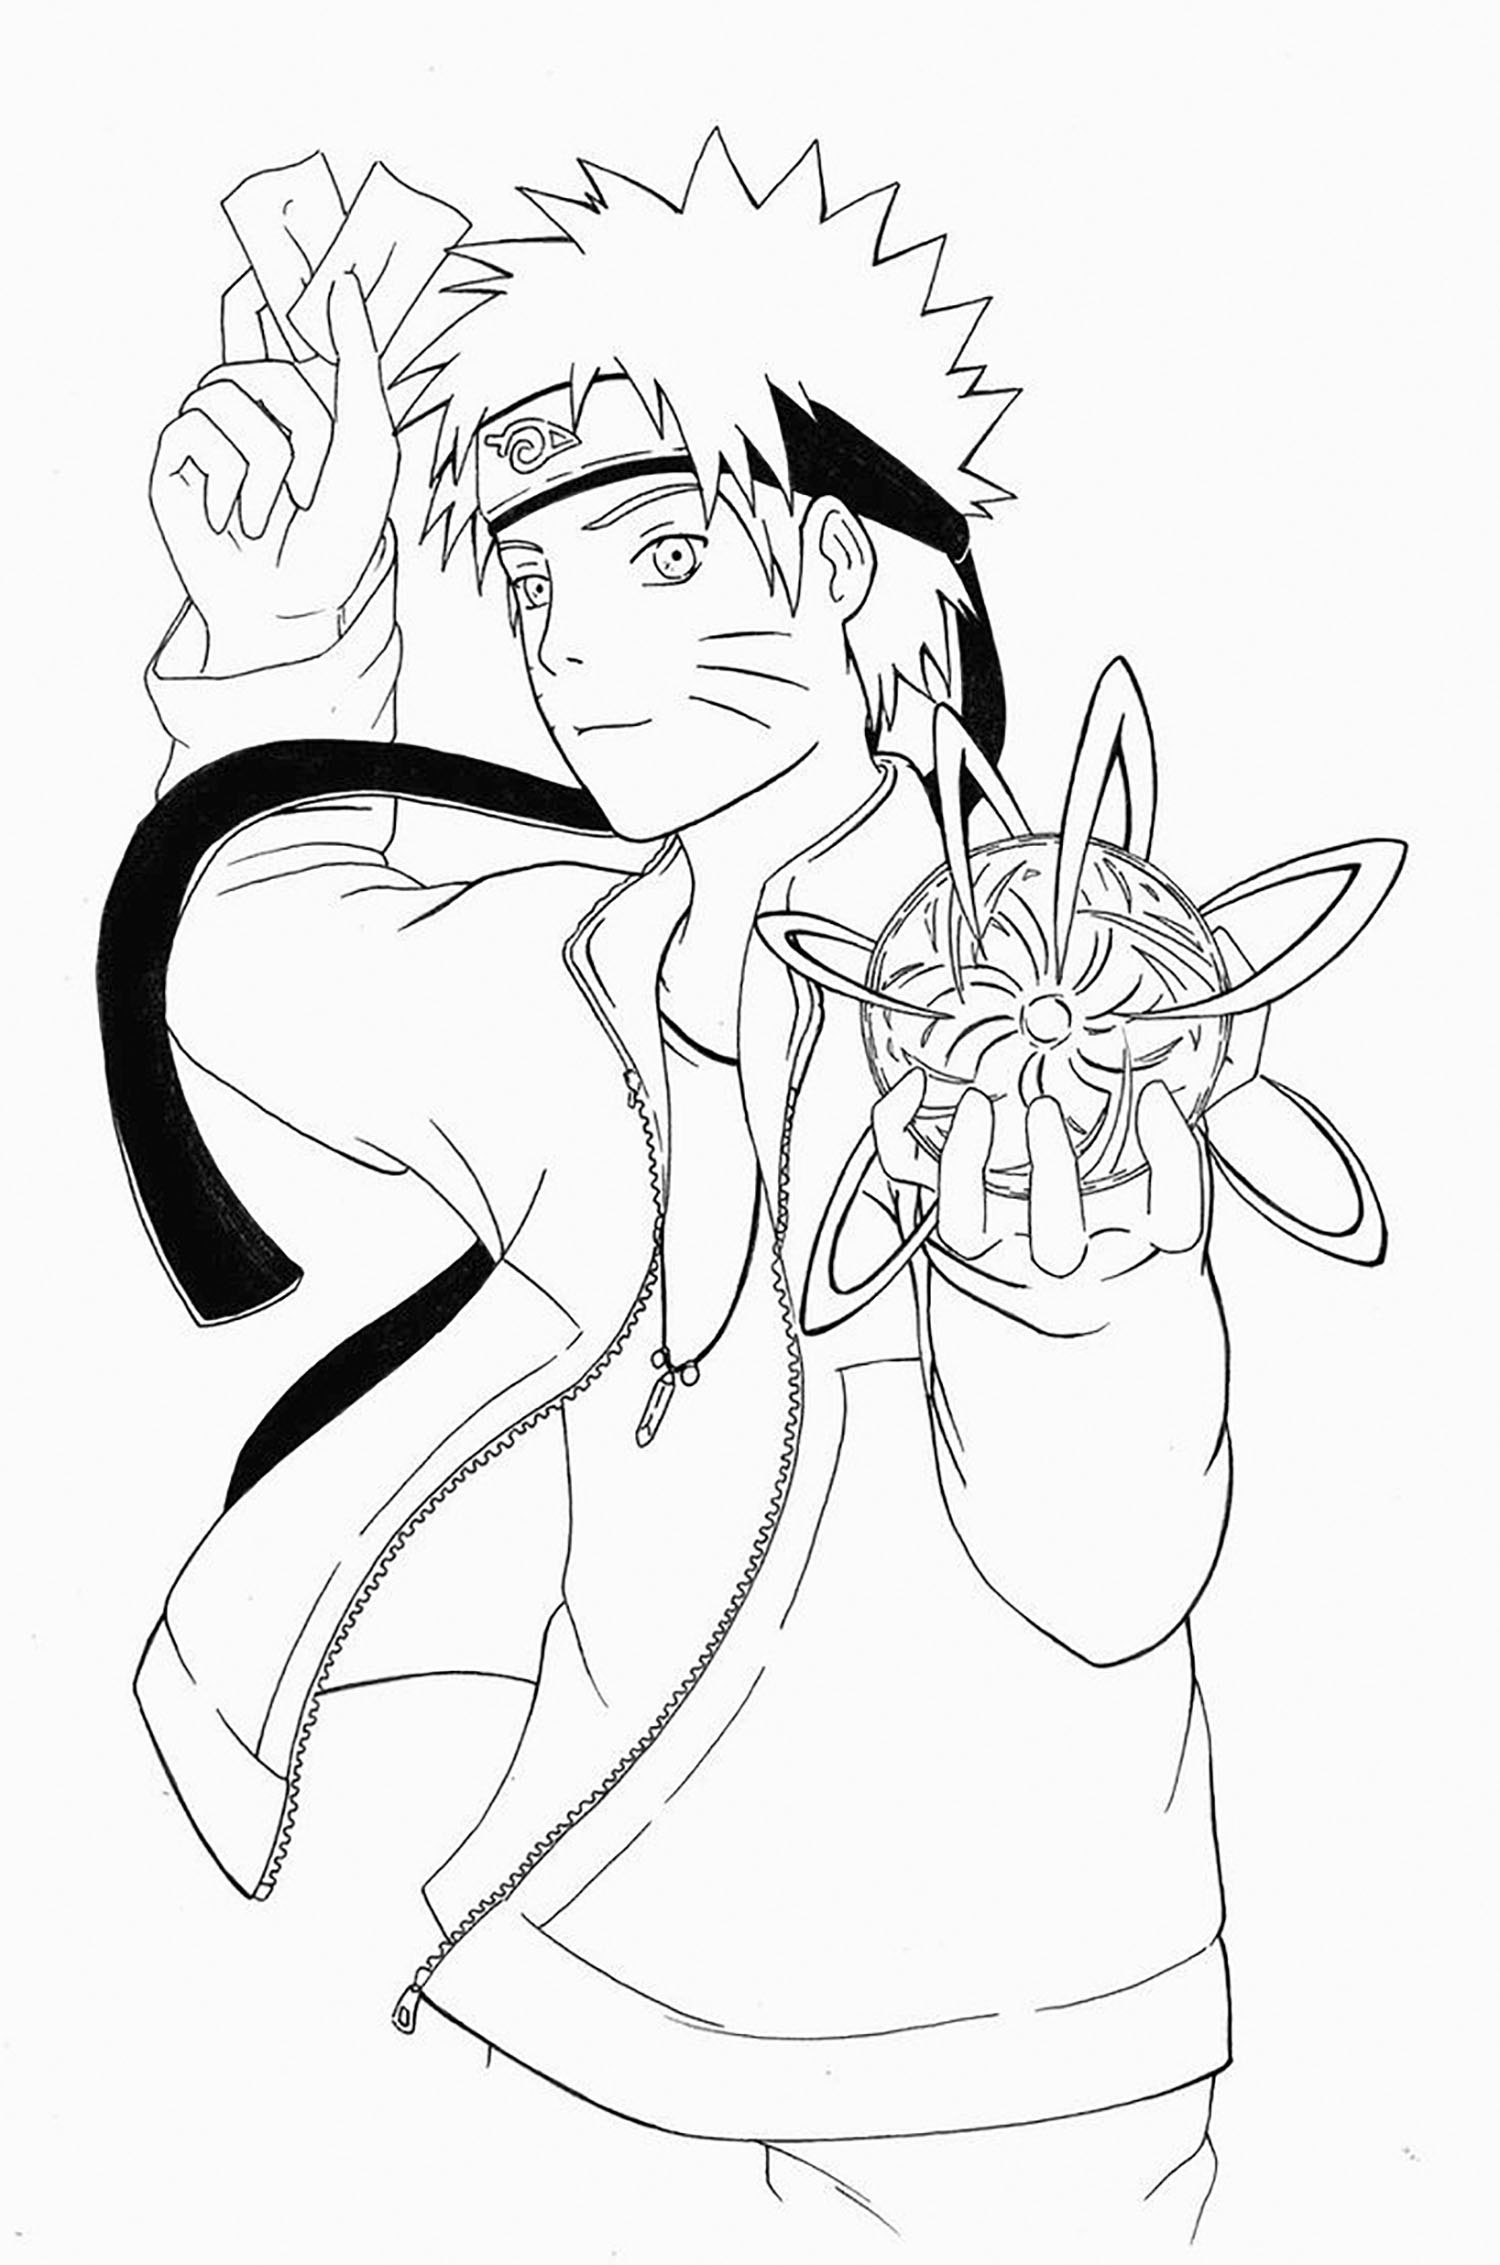 Anime Naruto Coloring Pages Naruto To Download For Free Naruto Kids Coloring Pages